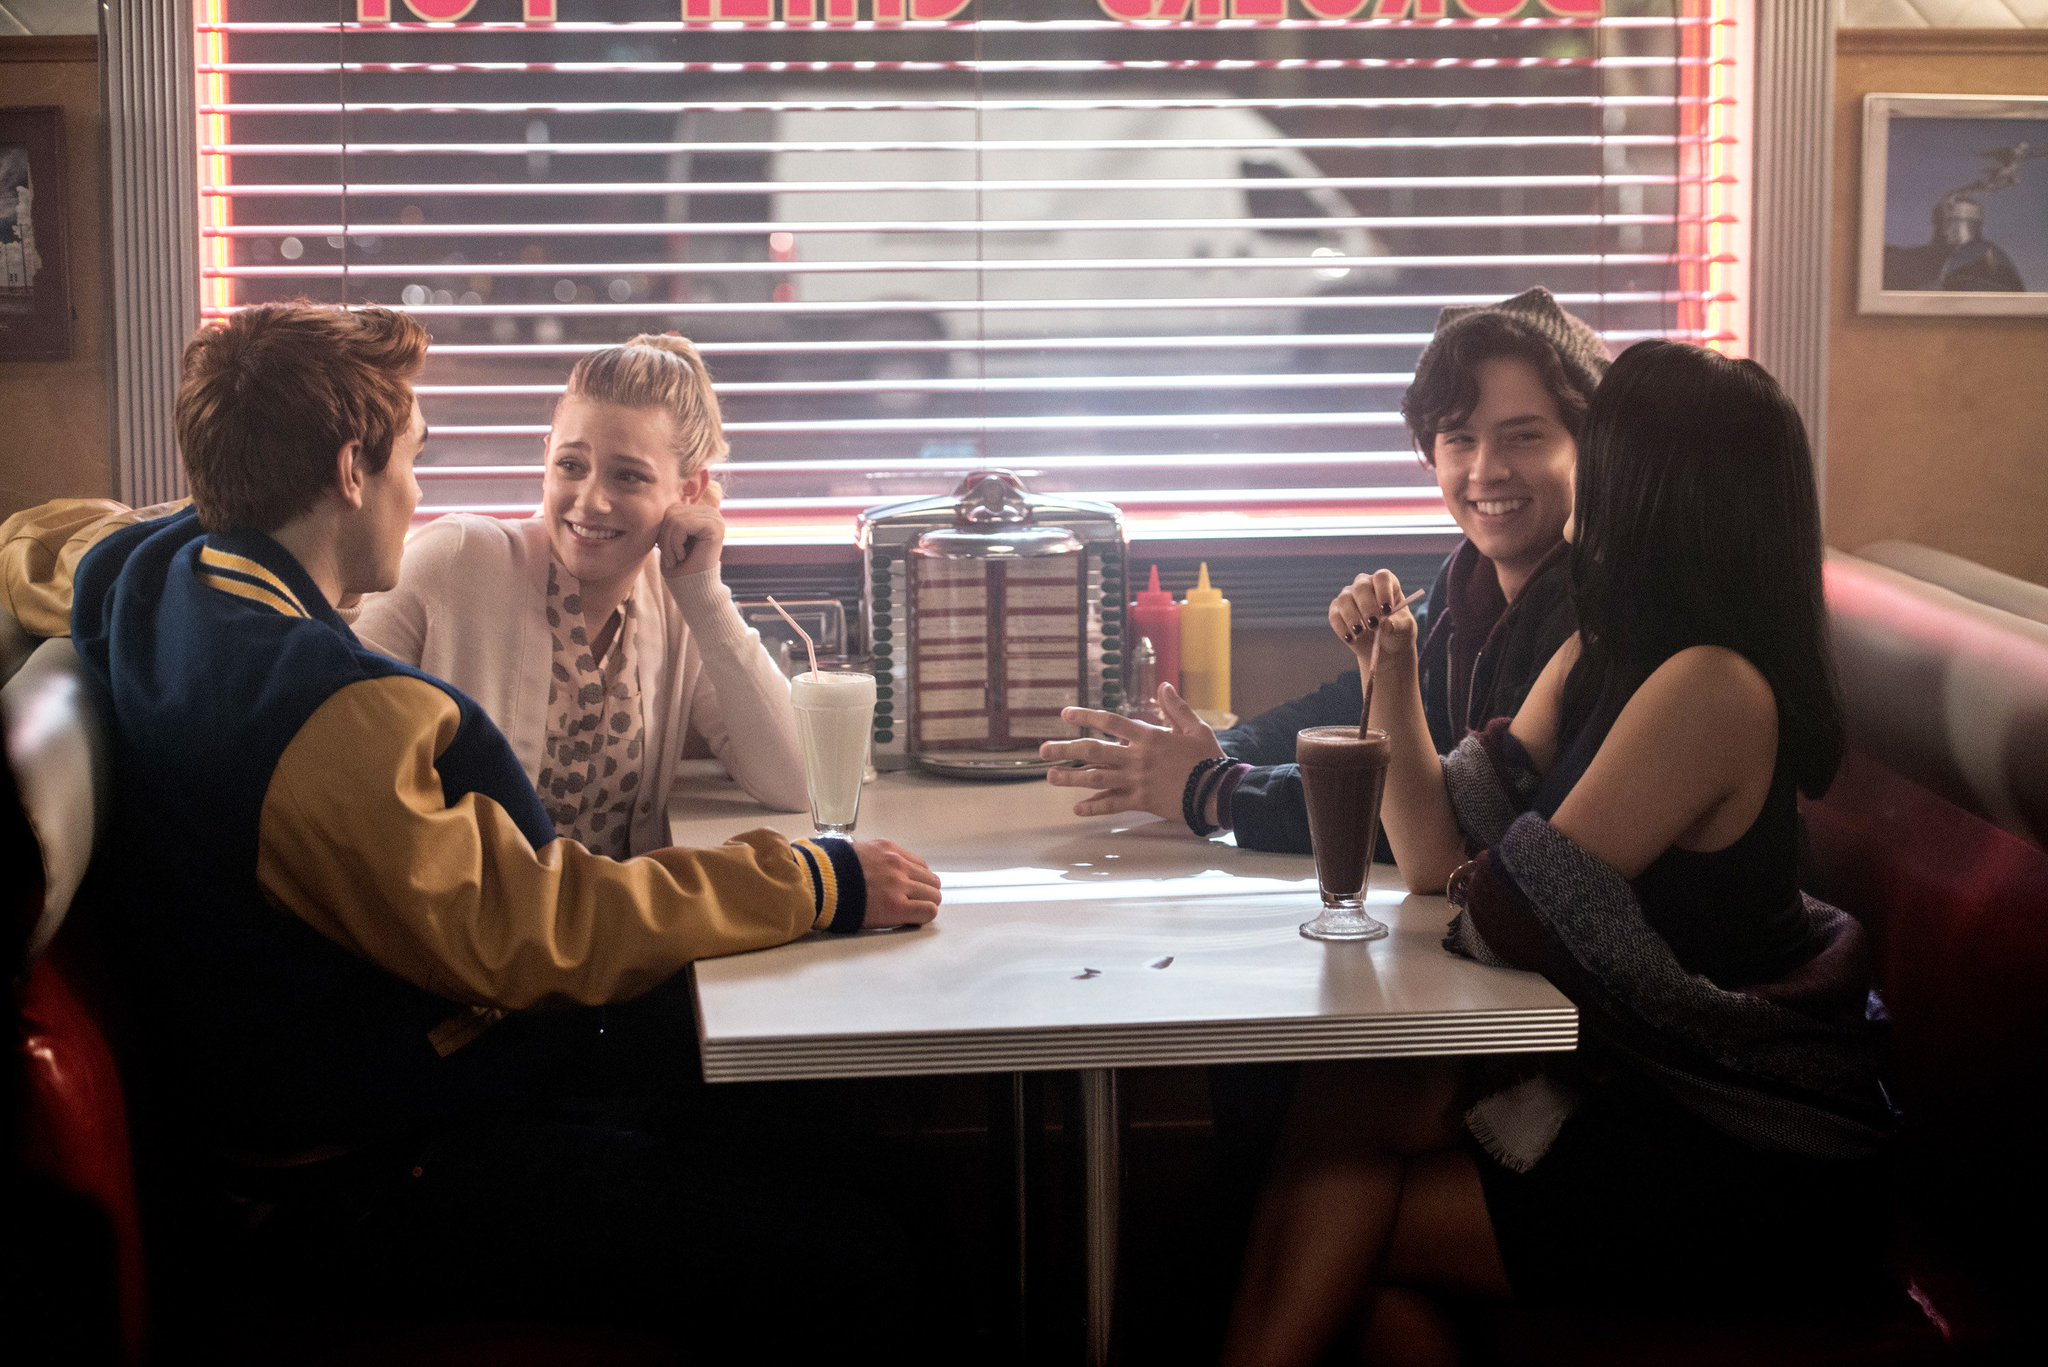 This 'Riverdale' Fan Theory About the Core Four Is Very Creepy but Totally Possible https://t.co/RW8IKAqMIk https://t.co/C7AxL6rxq0